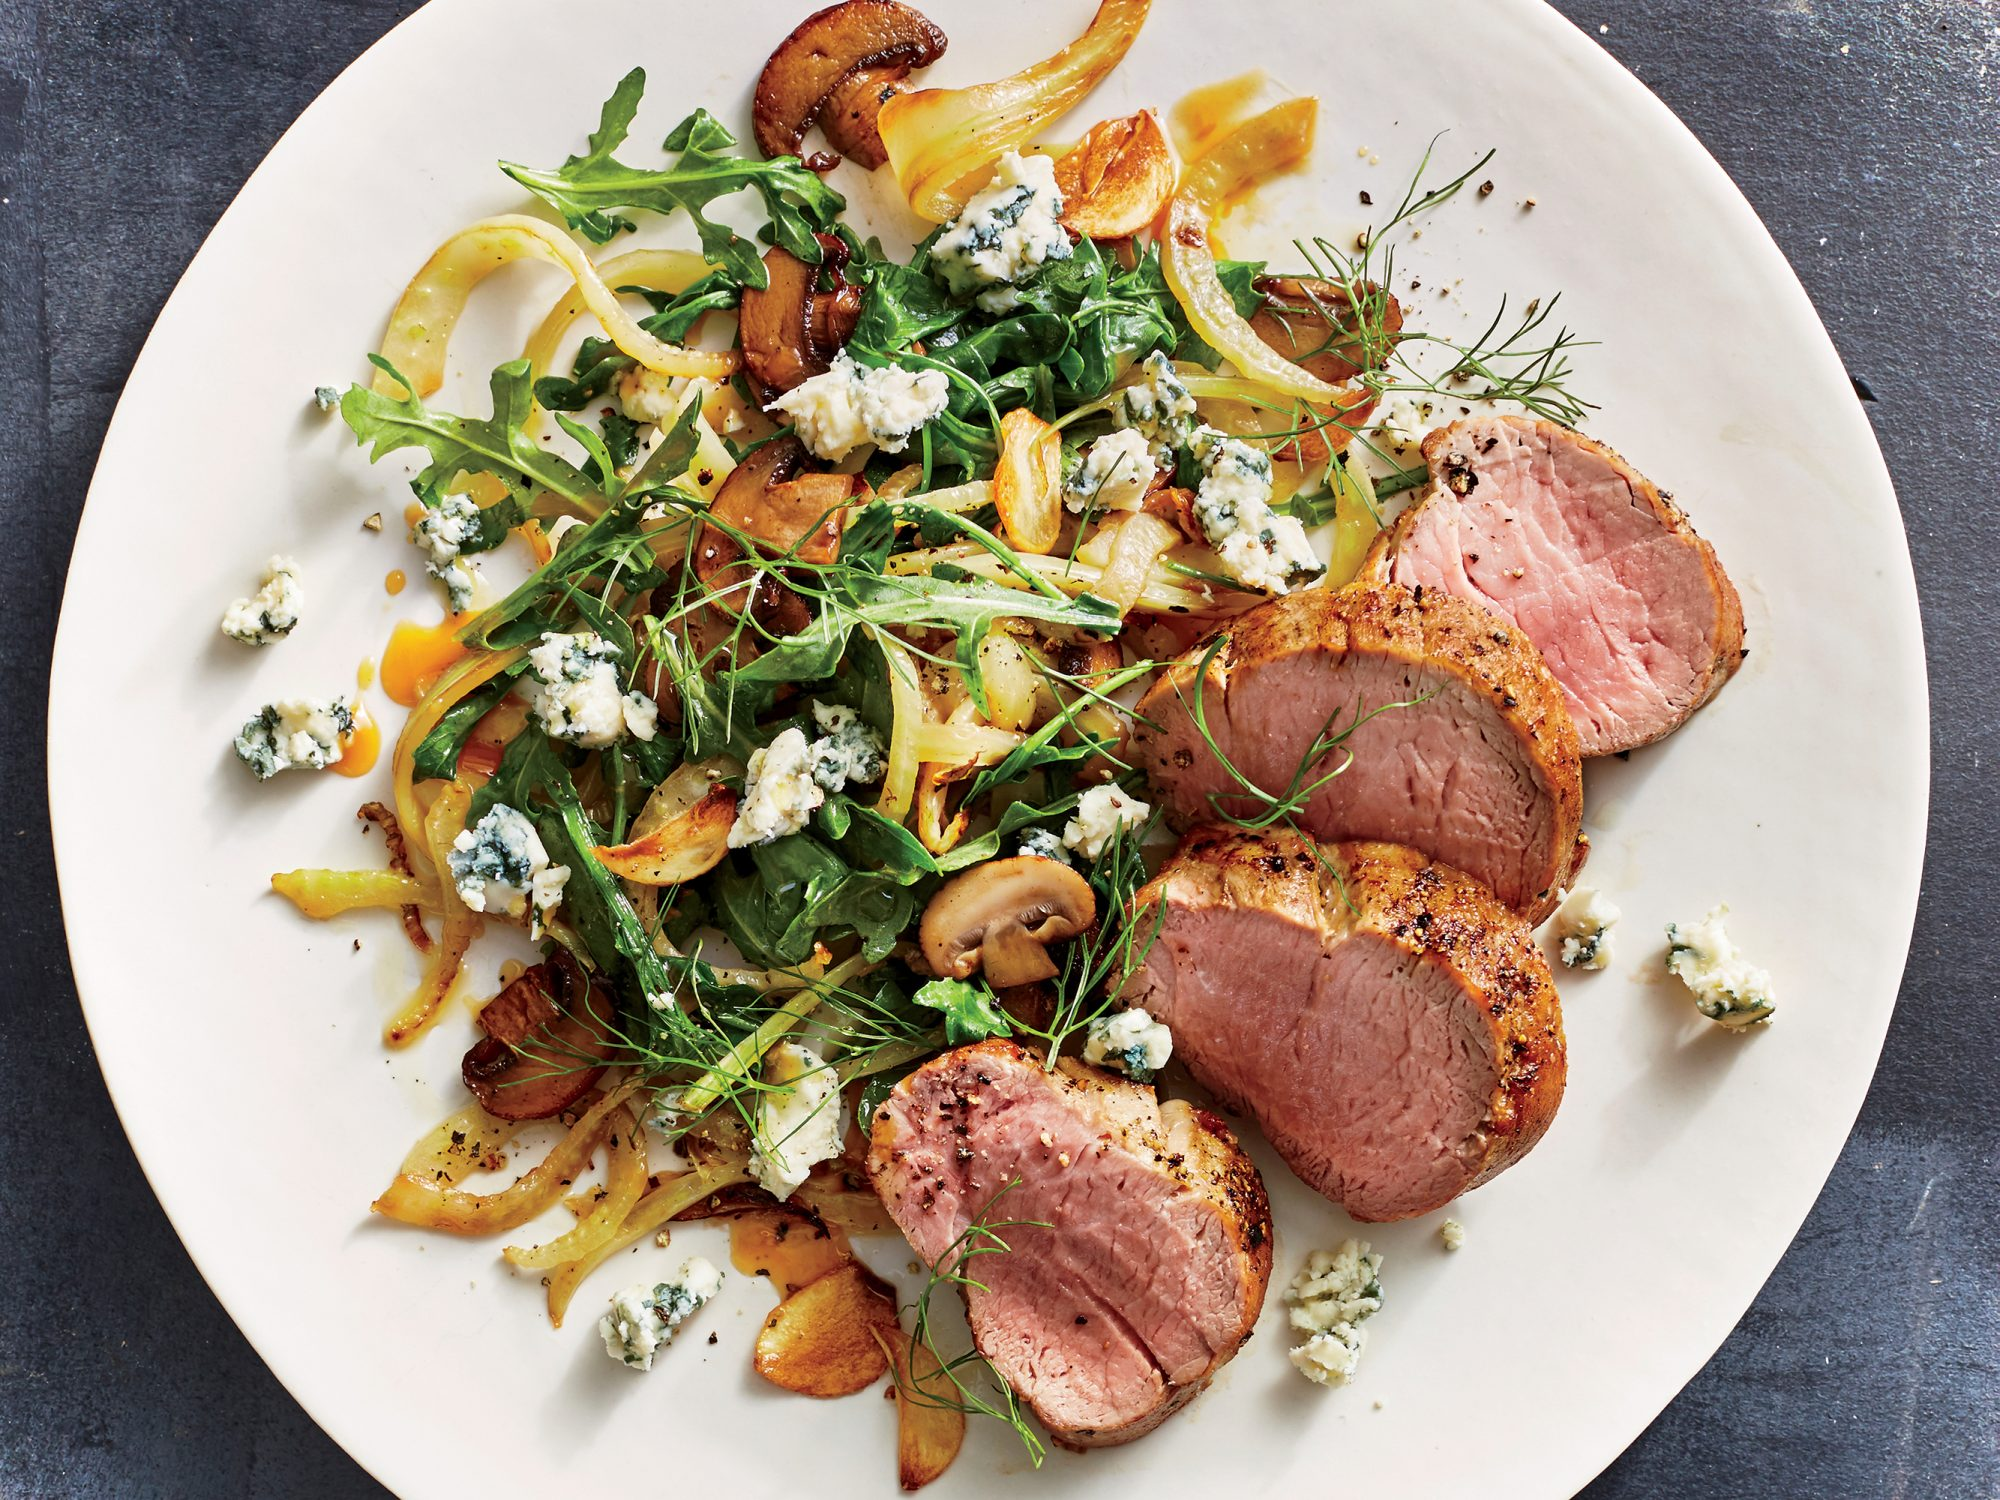 Pork Tenderloin with Mushrooms, Fennel, and Blue Cheese